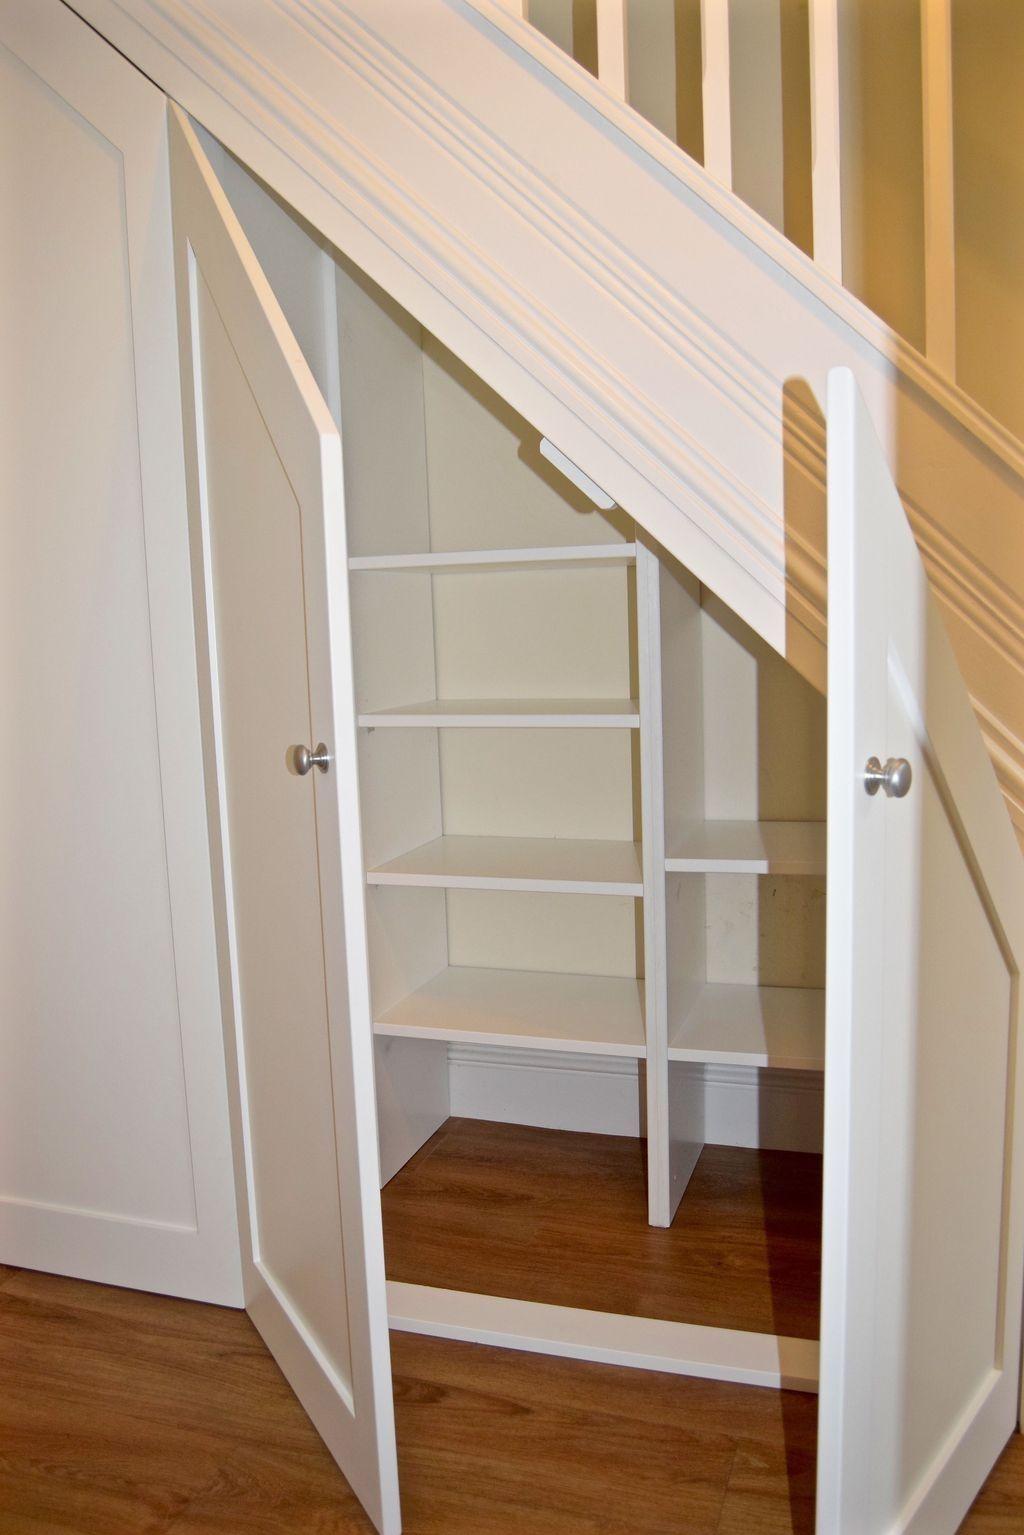 20 Adorable Storage Ideas For Under Stairs Stauraum Unter Der